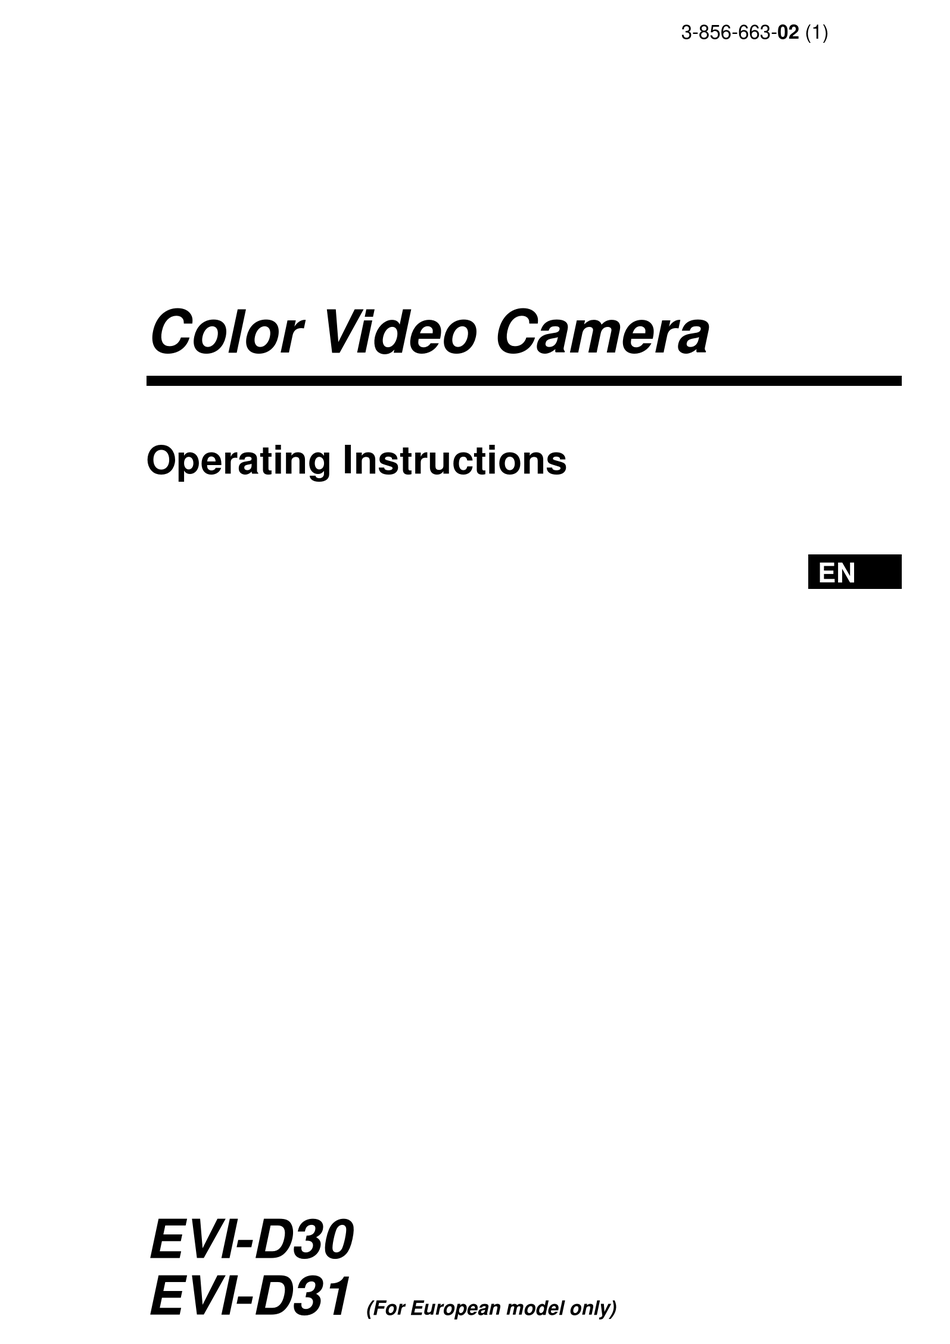 SONY EVI-D30 OPERATING INSTRUCTIONS MANUAL Pdf Download